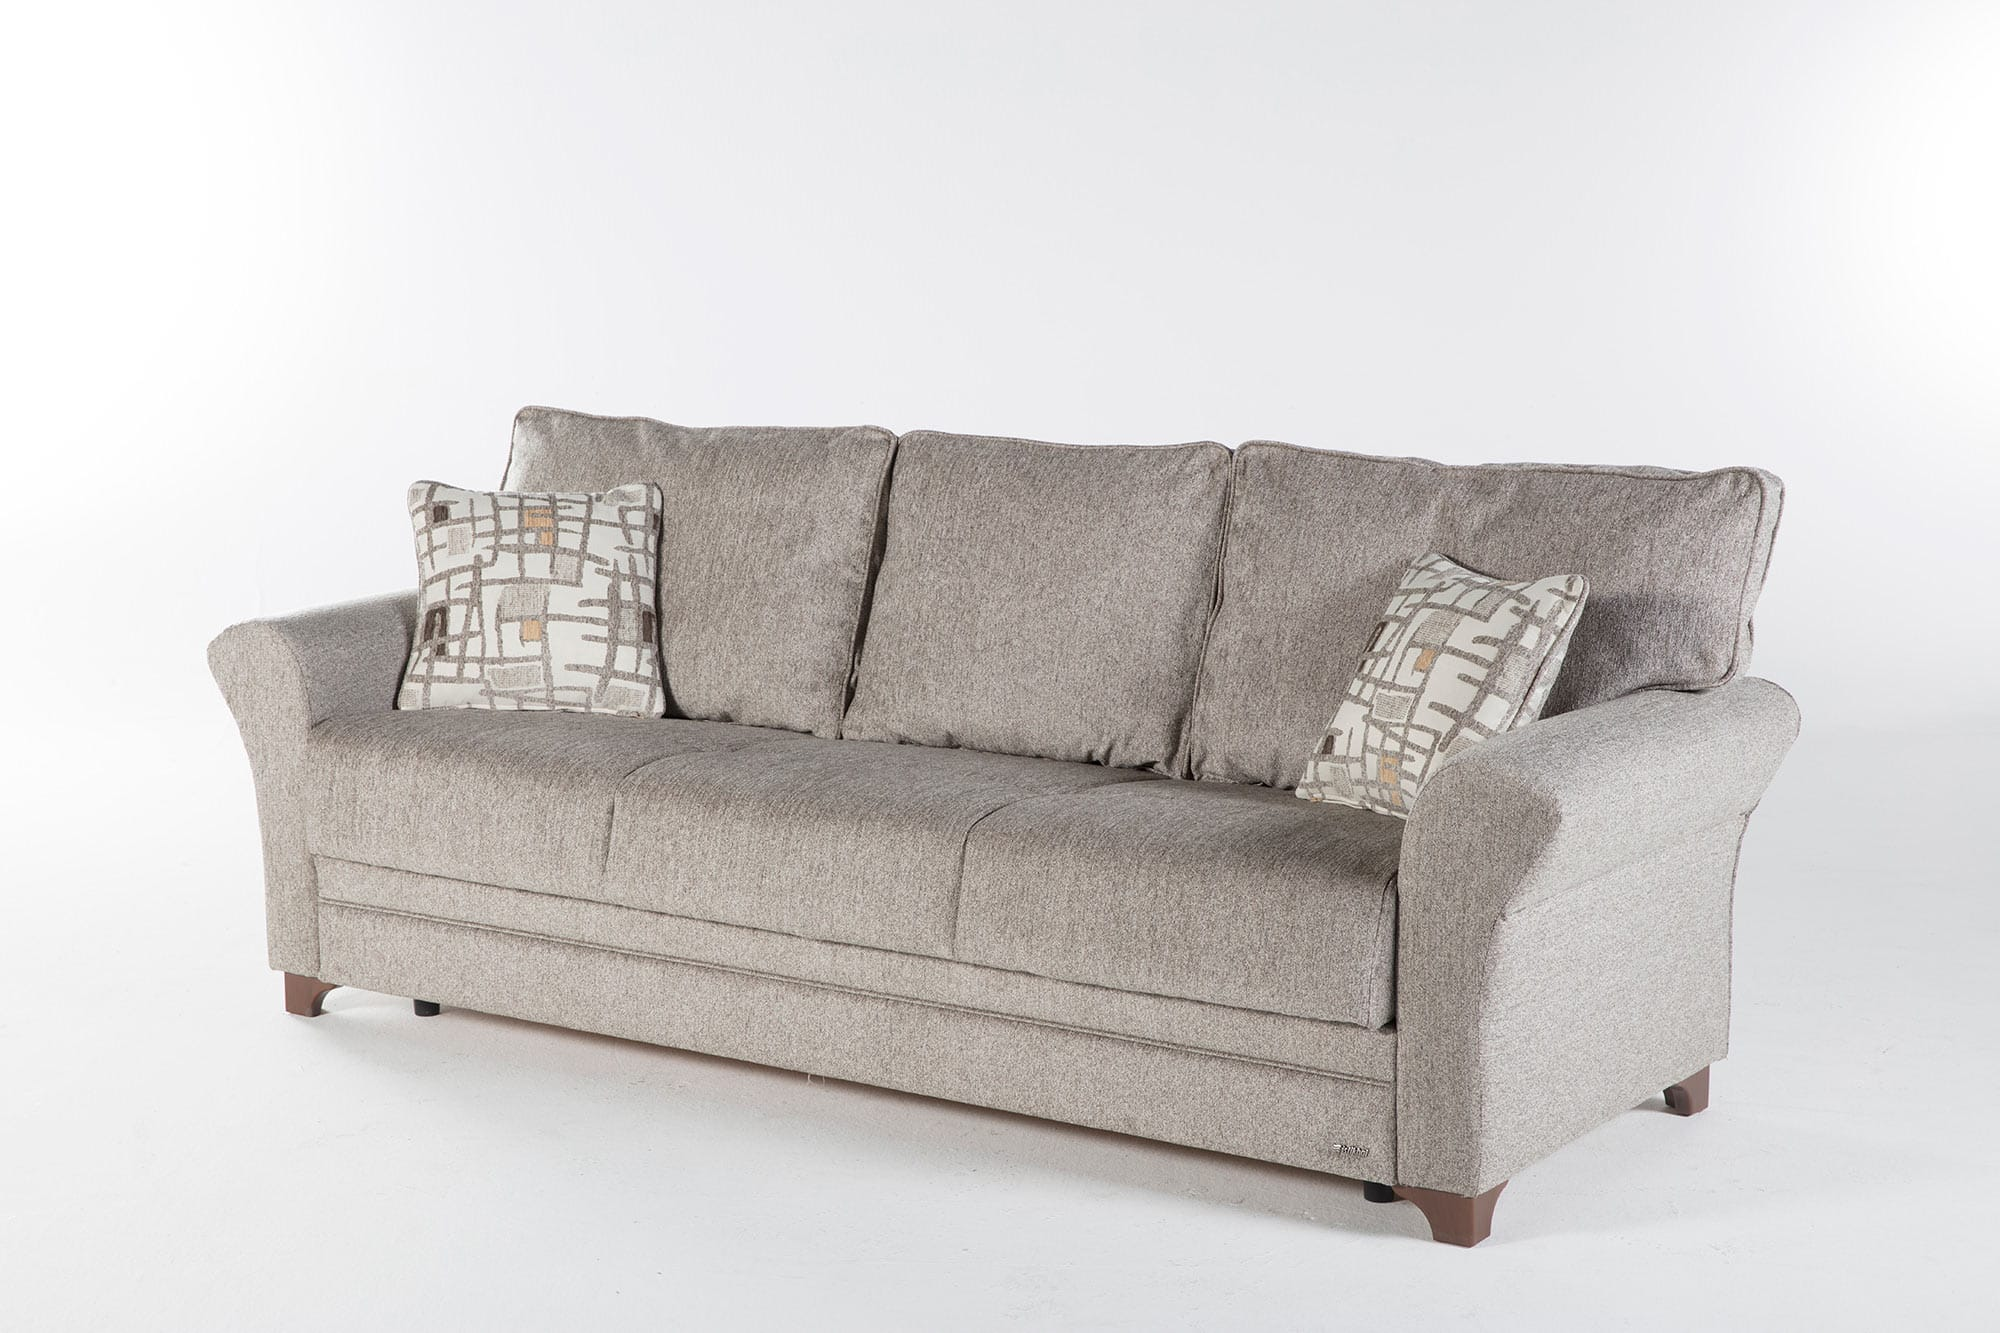 Padova Aristo Light Brown Convertible Sofa Bed by Istikbal Furniture